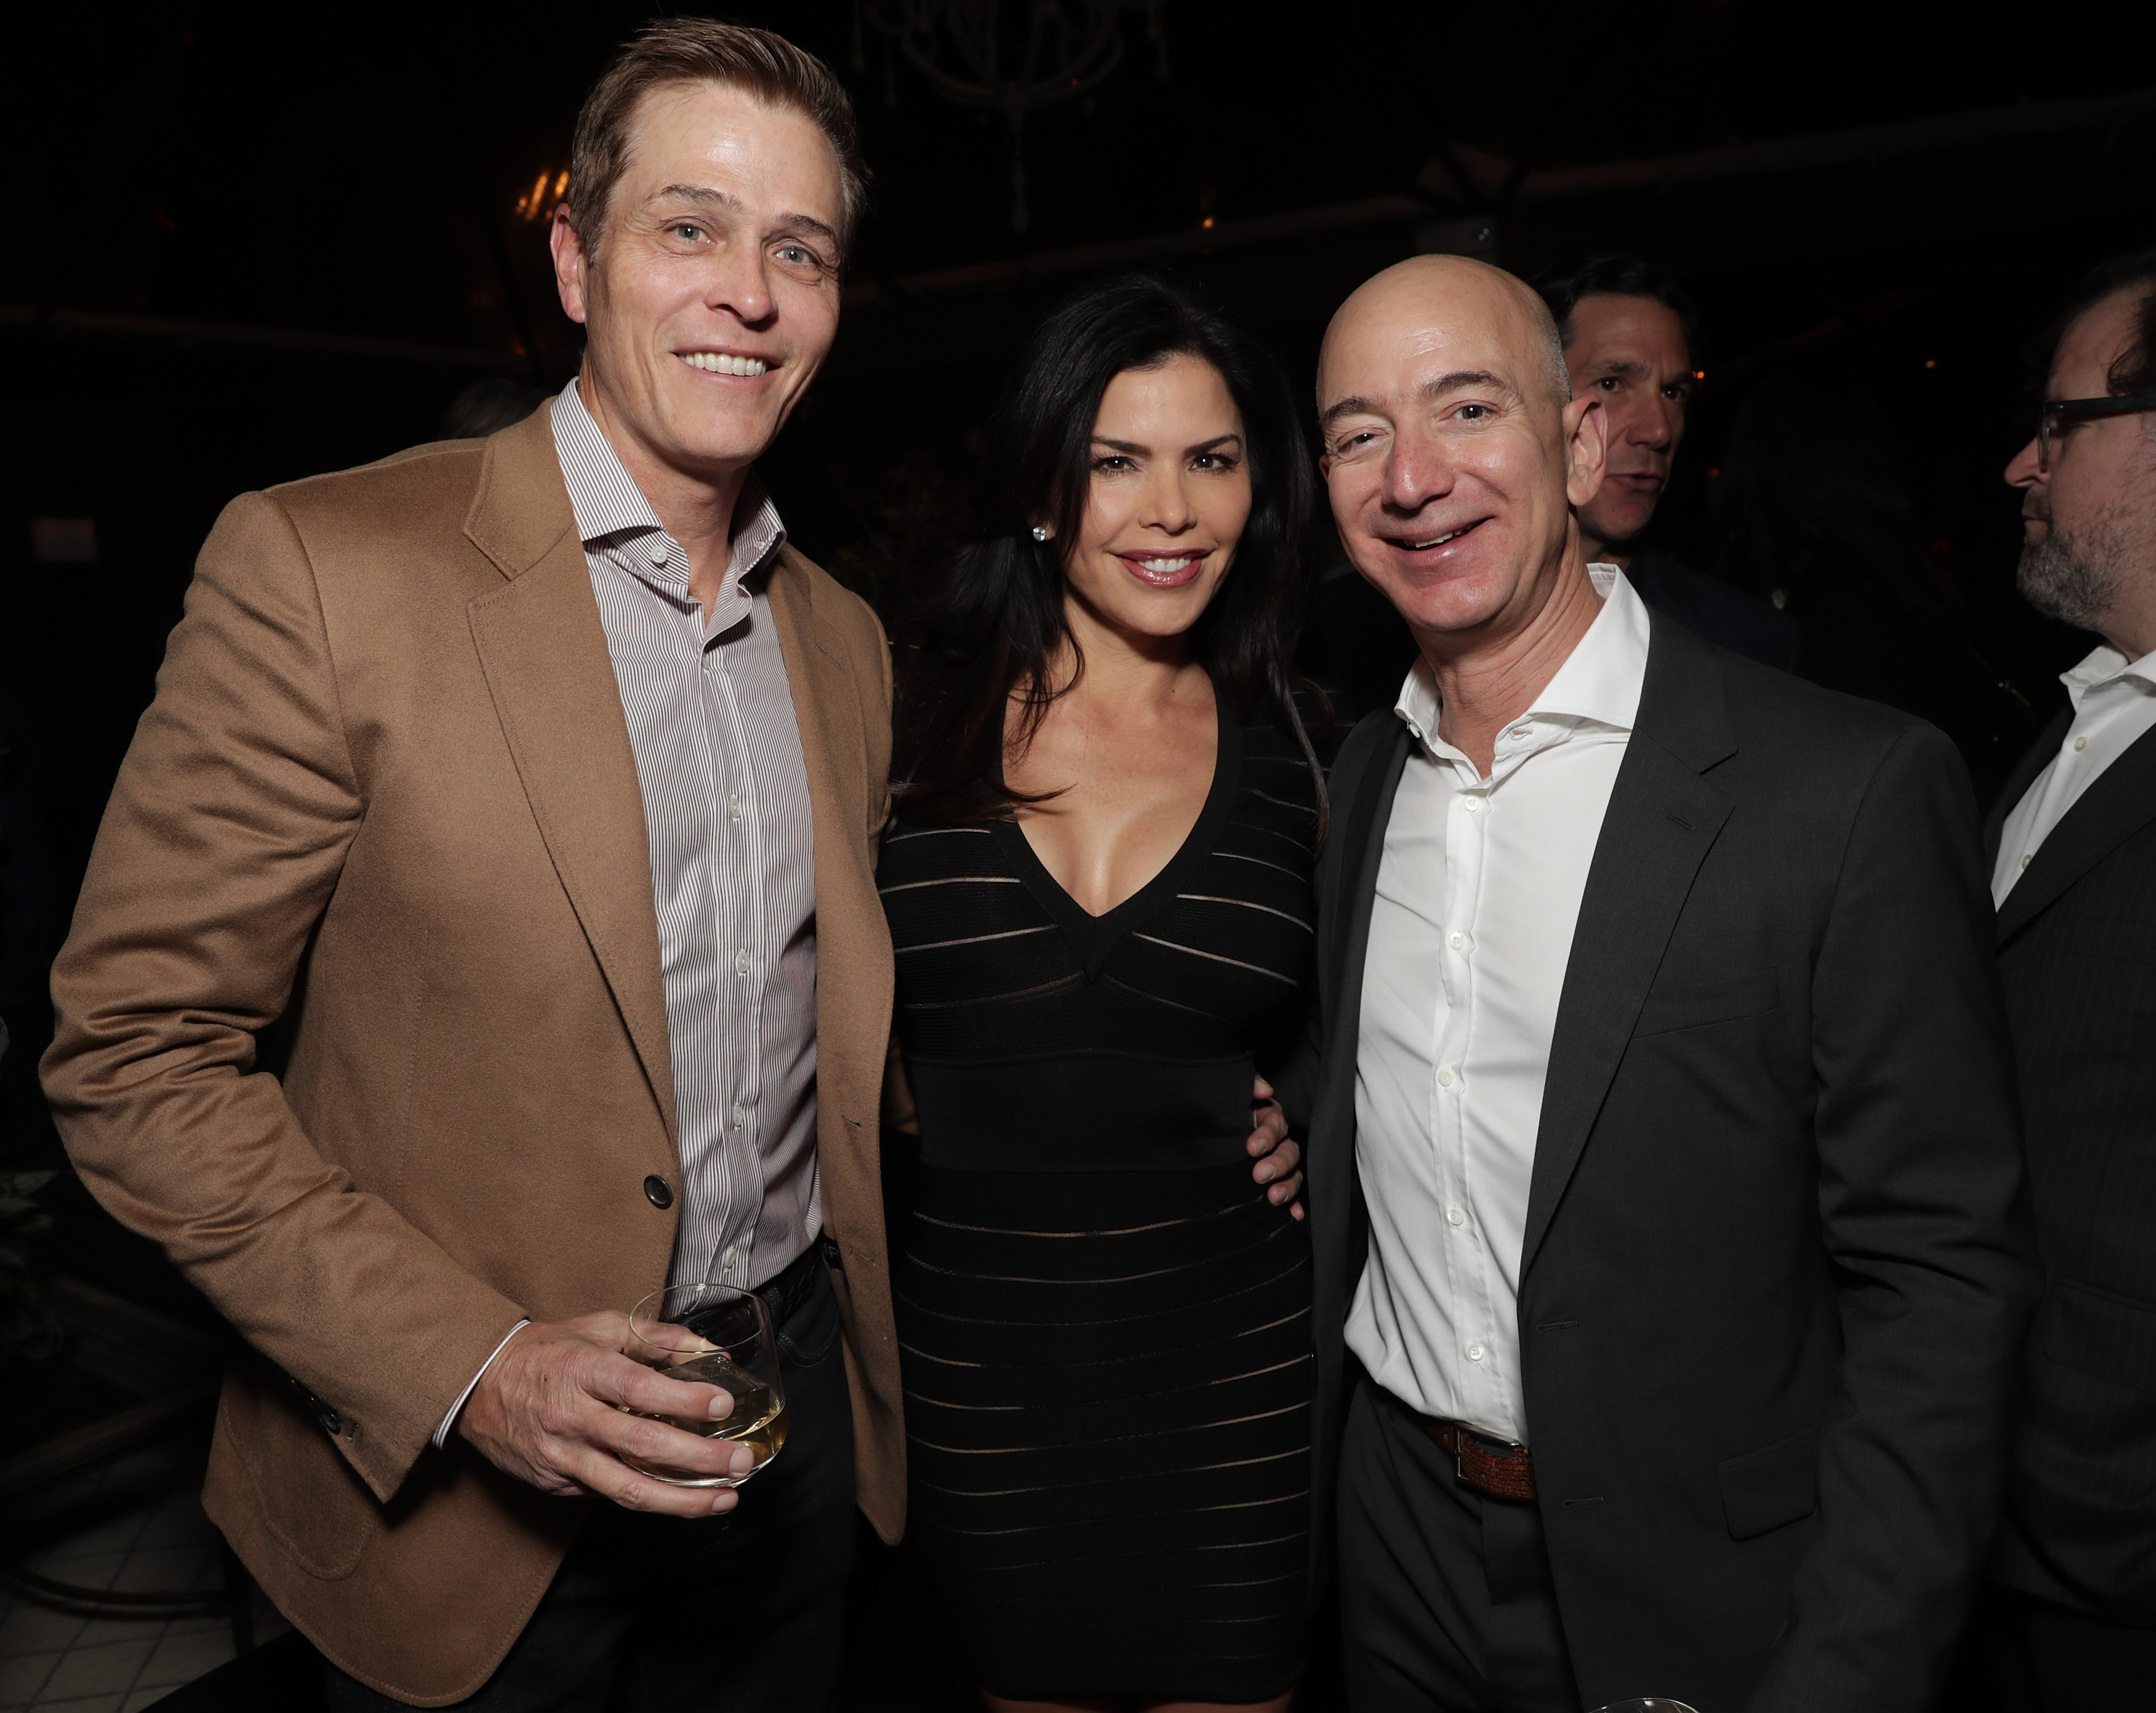 WME's Patrick Whitesell, Lauren Sanchez and Amazon CEO Jeff Bezos attend Jeff Bezos and Matt Damon's  Manchester By The Sea  Holiday Party on Dec. 3, 2016 in Los Angeles, California.